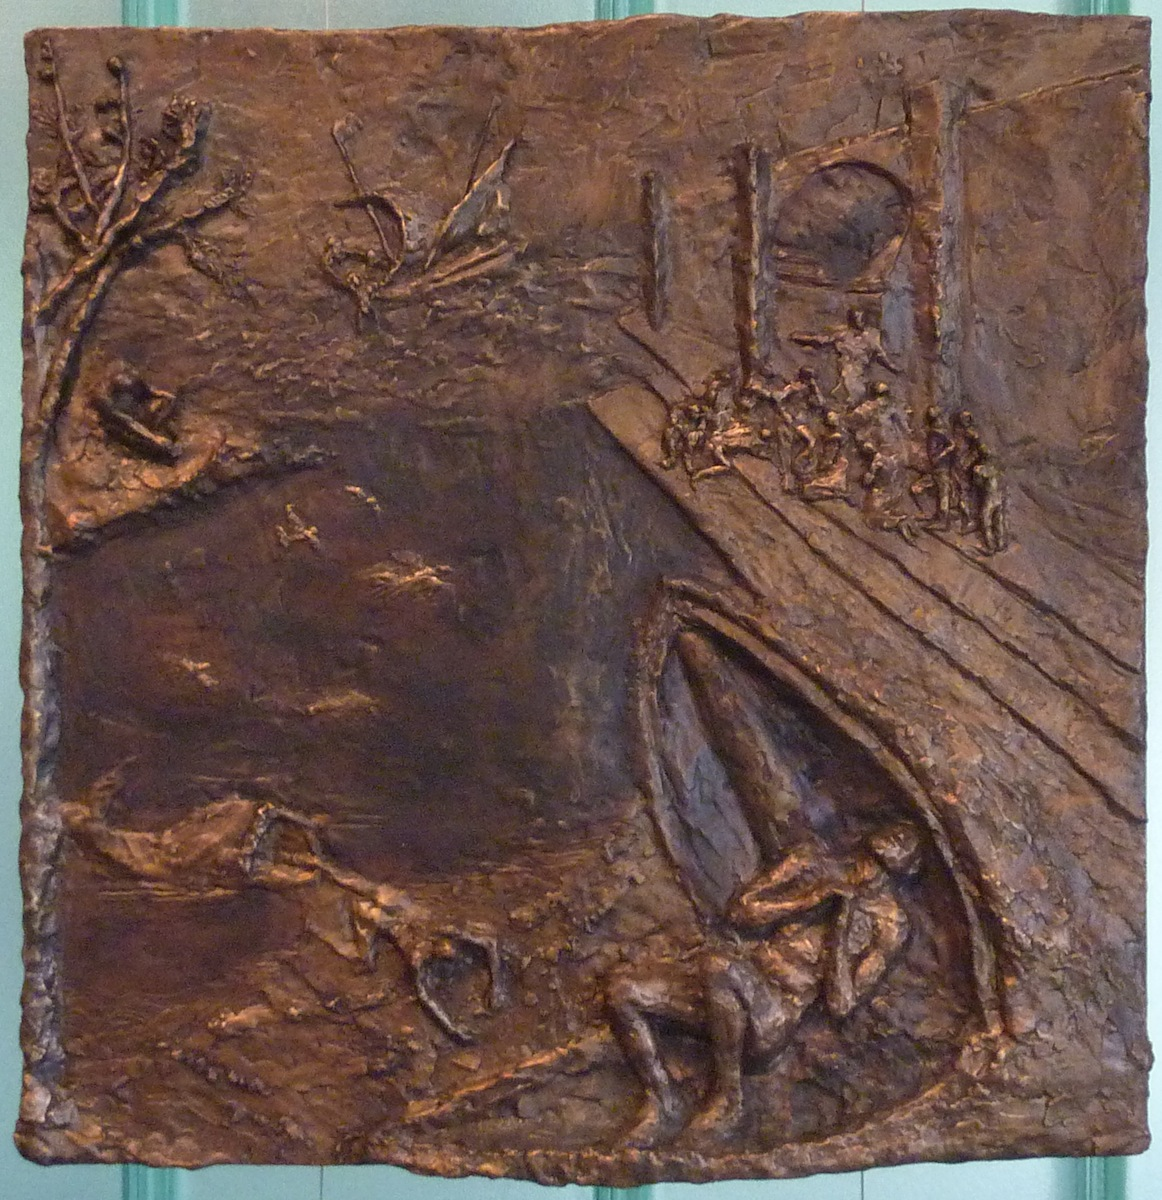 Jonah and the Whale (2012) 23 x 23, bronze relief by Lynda Caspe Courtesy Derfner Judaica Museum – Hebrew Home at Riverdale